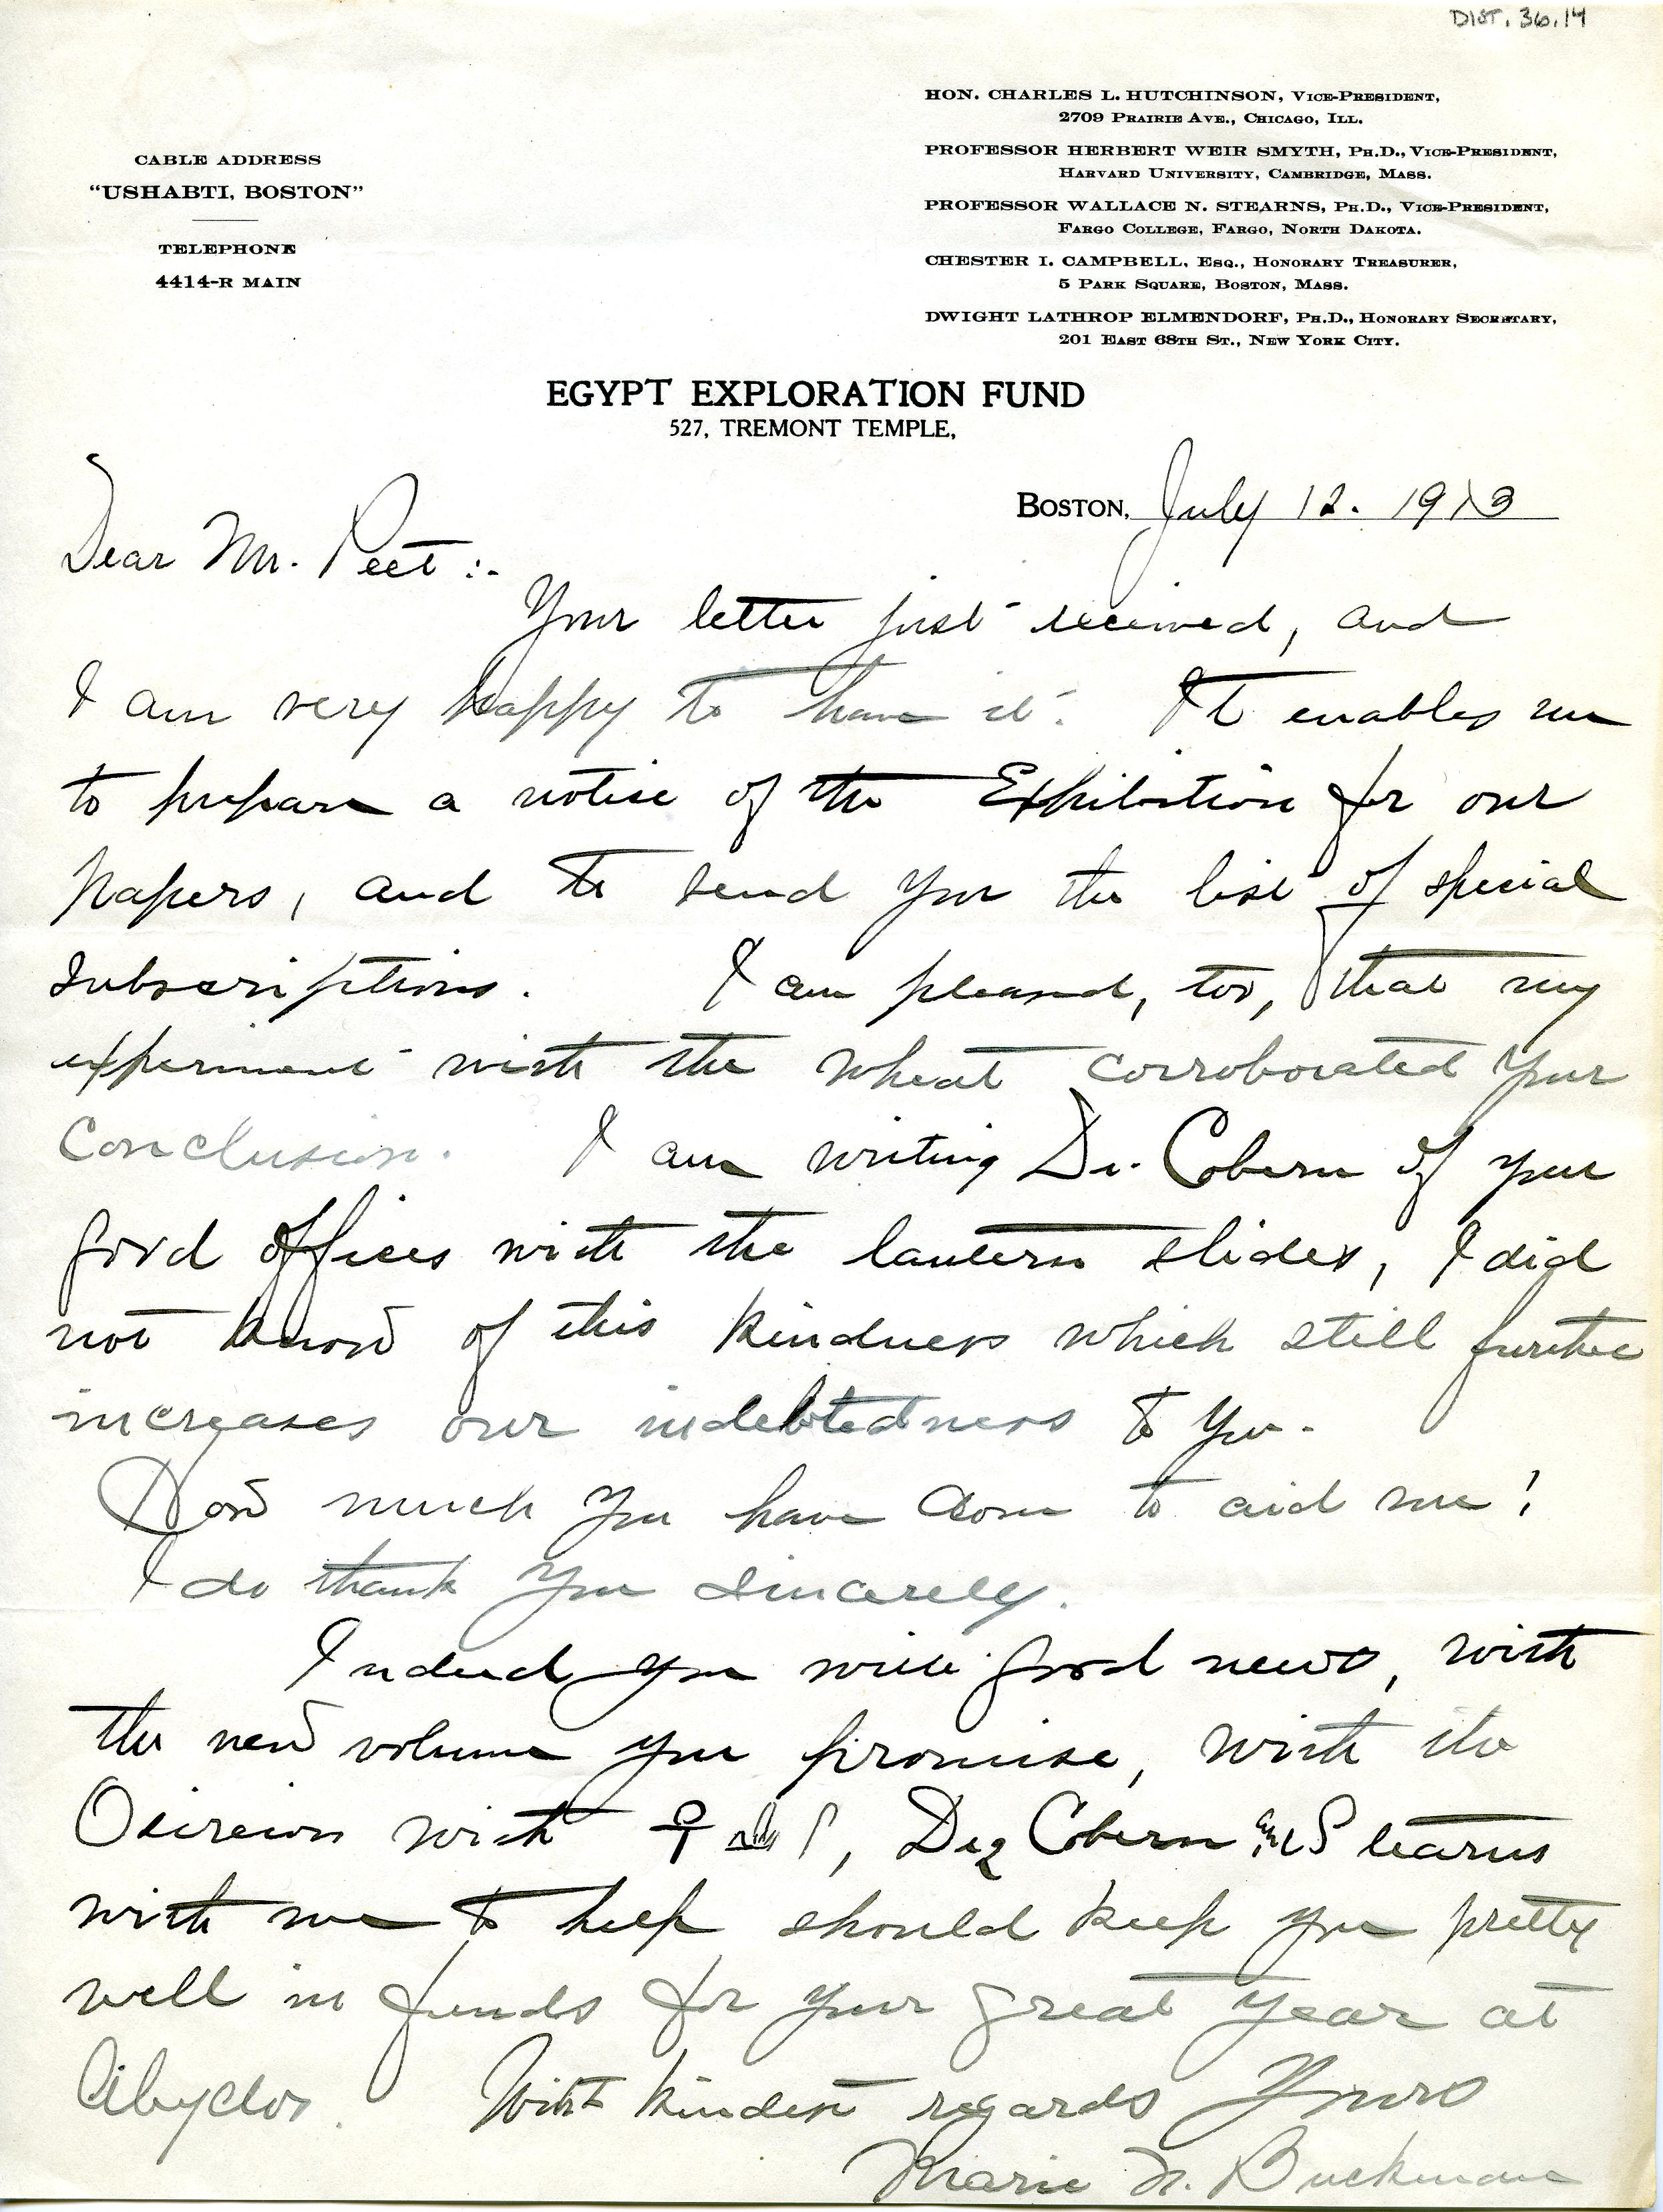 1913 Correspondence American museums DIST.36.14